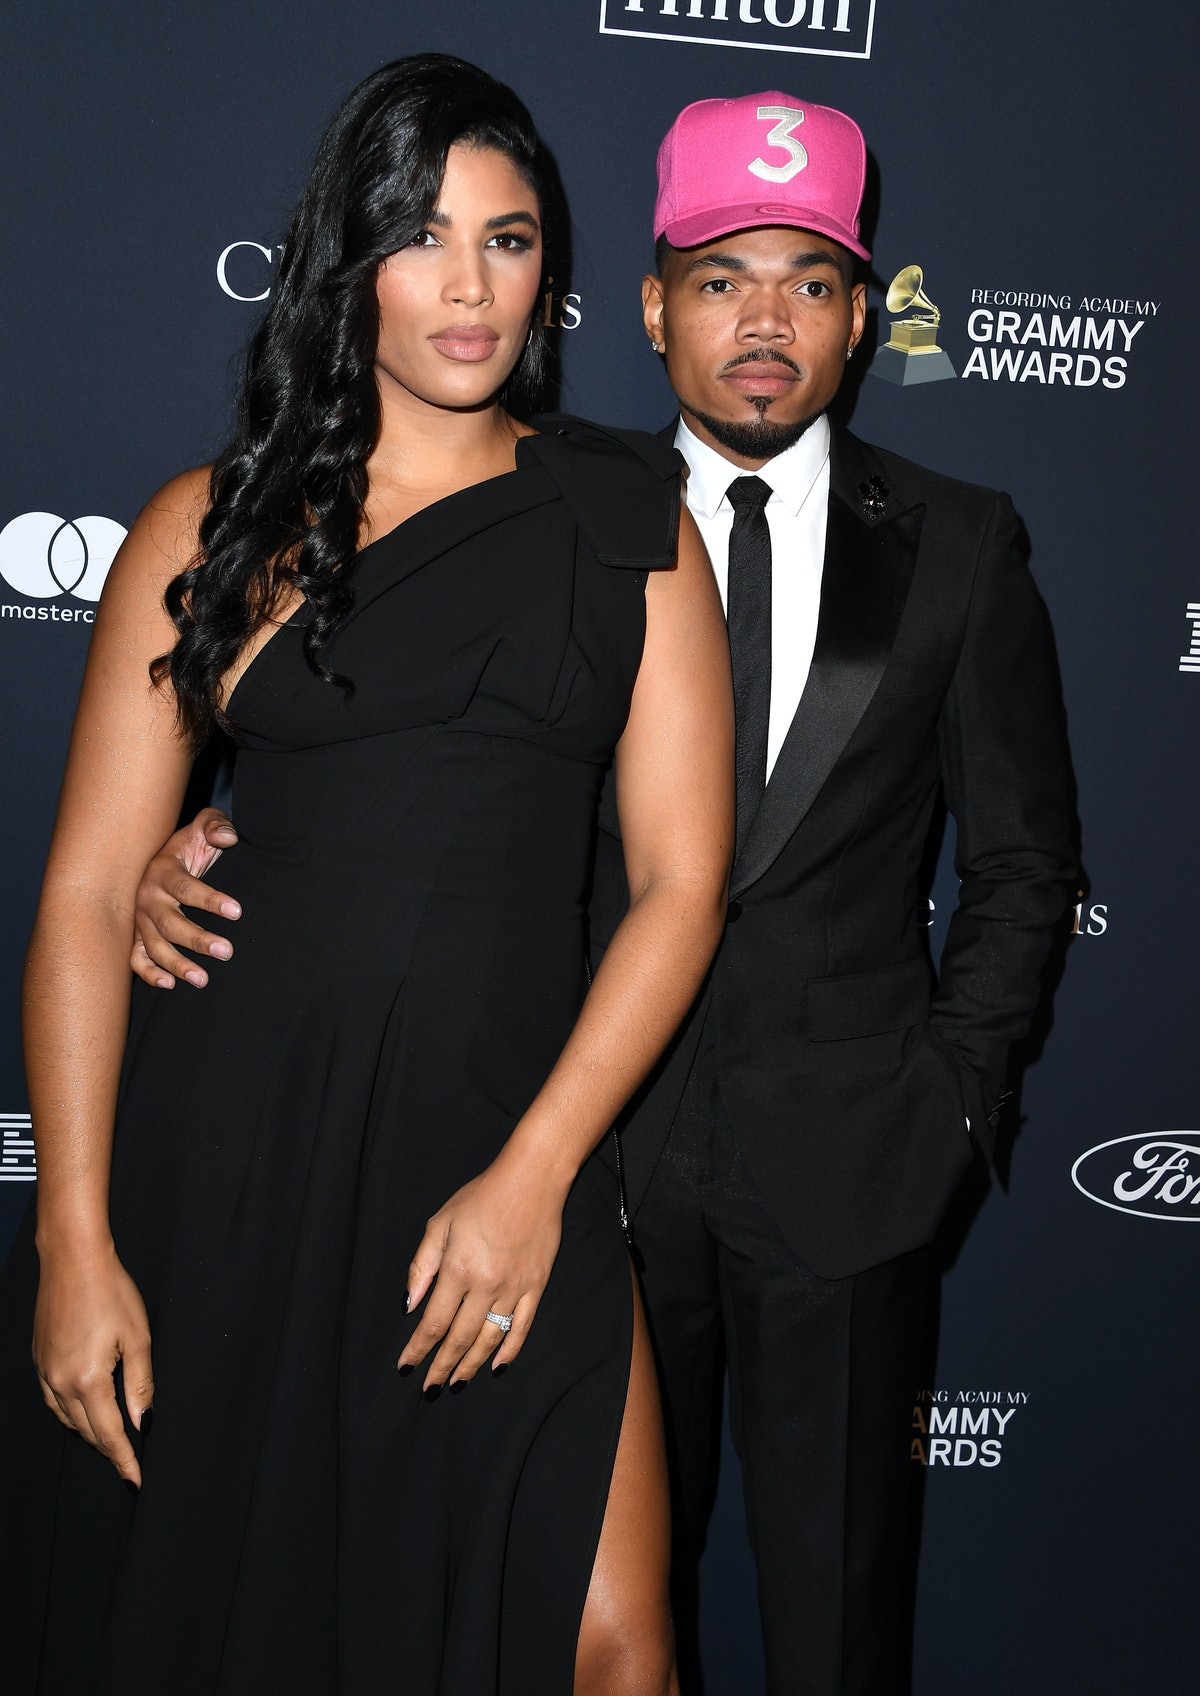 BEVERLY HILLS, CALIFORNIA - JANUARY 25: Kirsten Corley and Chance the Rapper arrives at the Pre-GRAM...